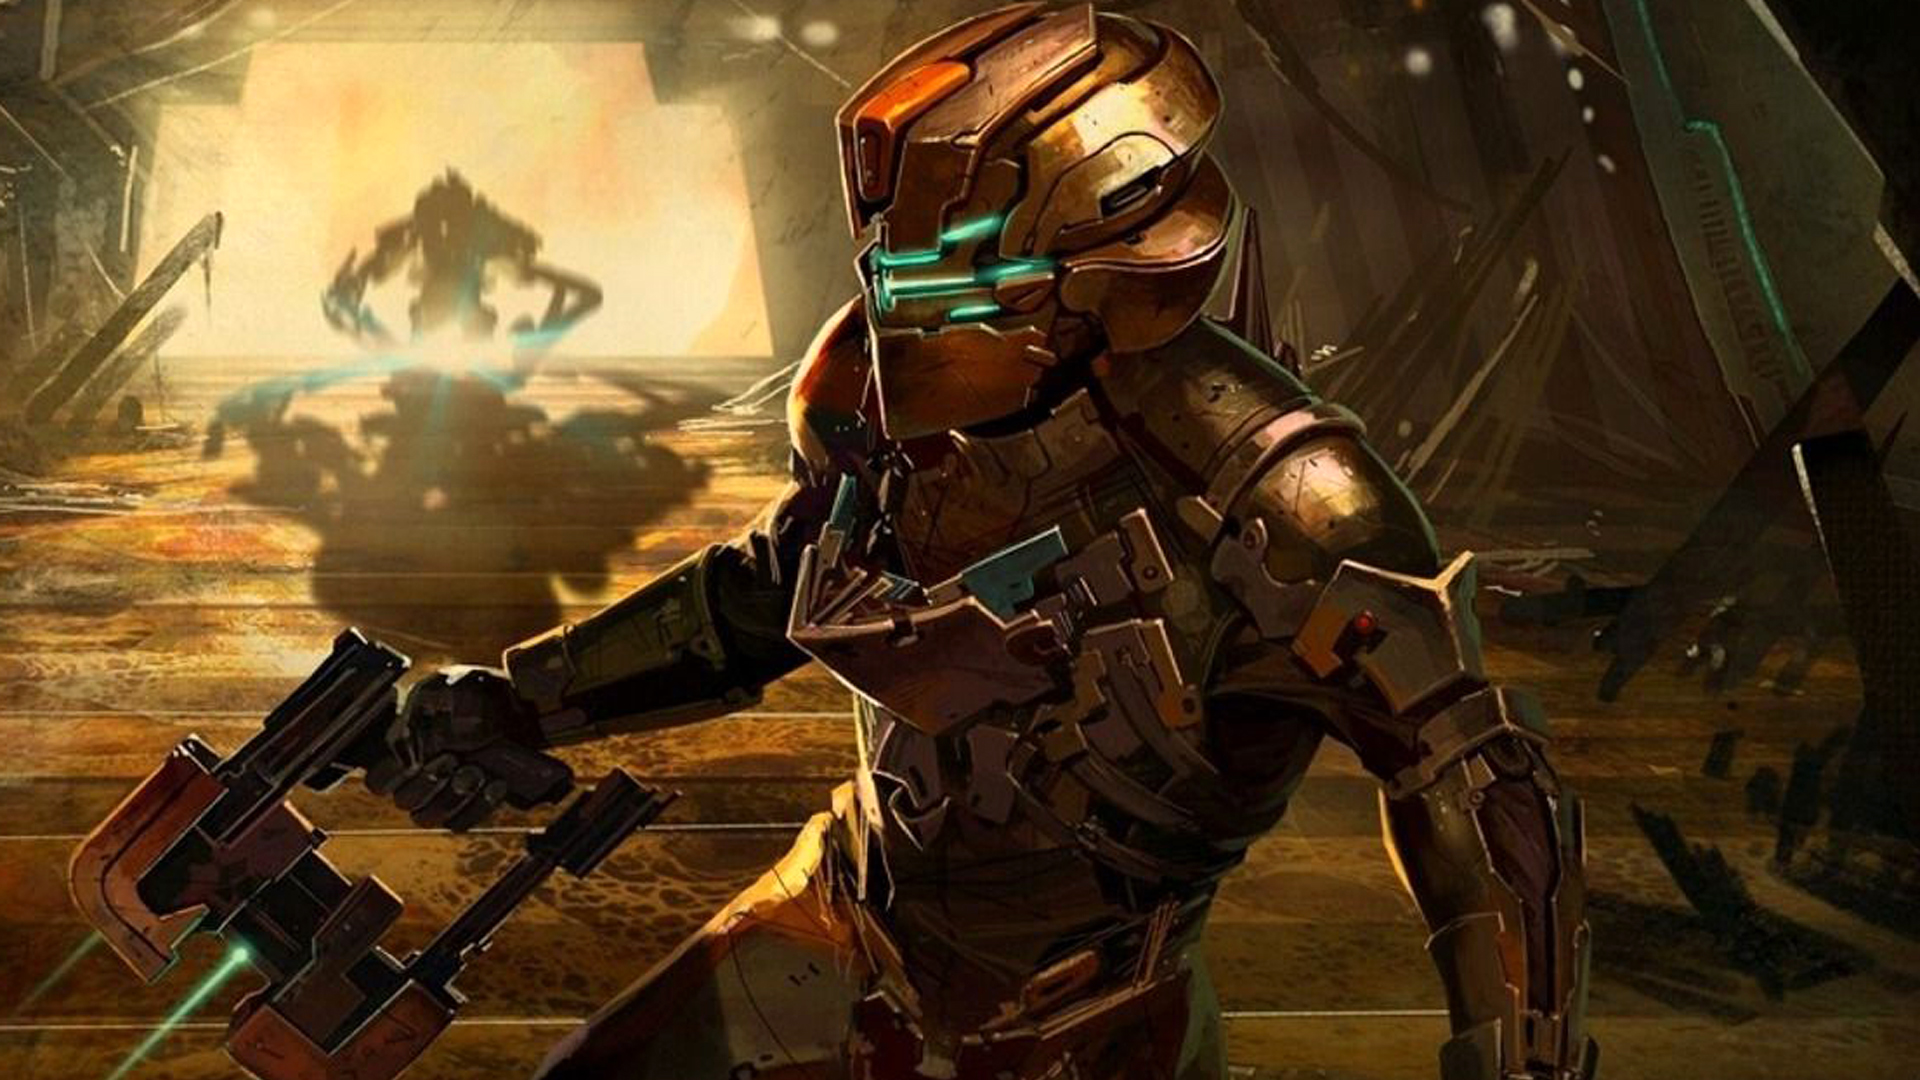 Report: Dead Space is aiming for a release of late 2022 at the earliest